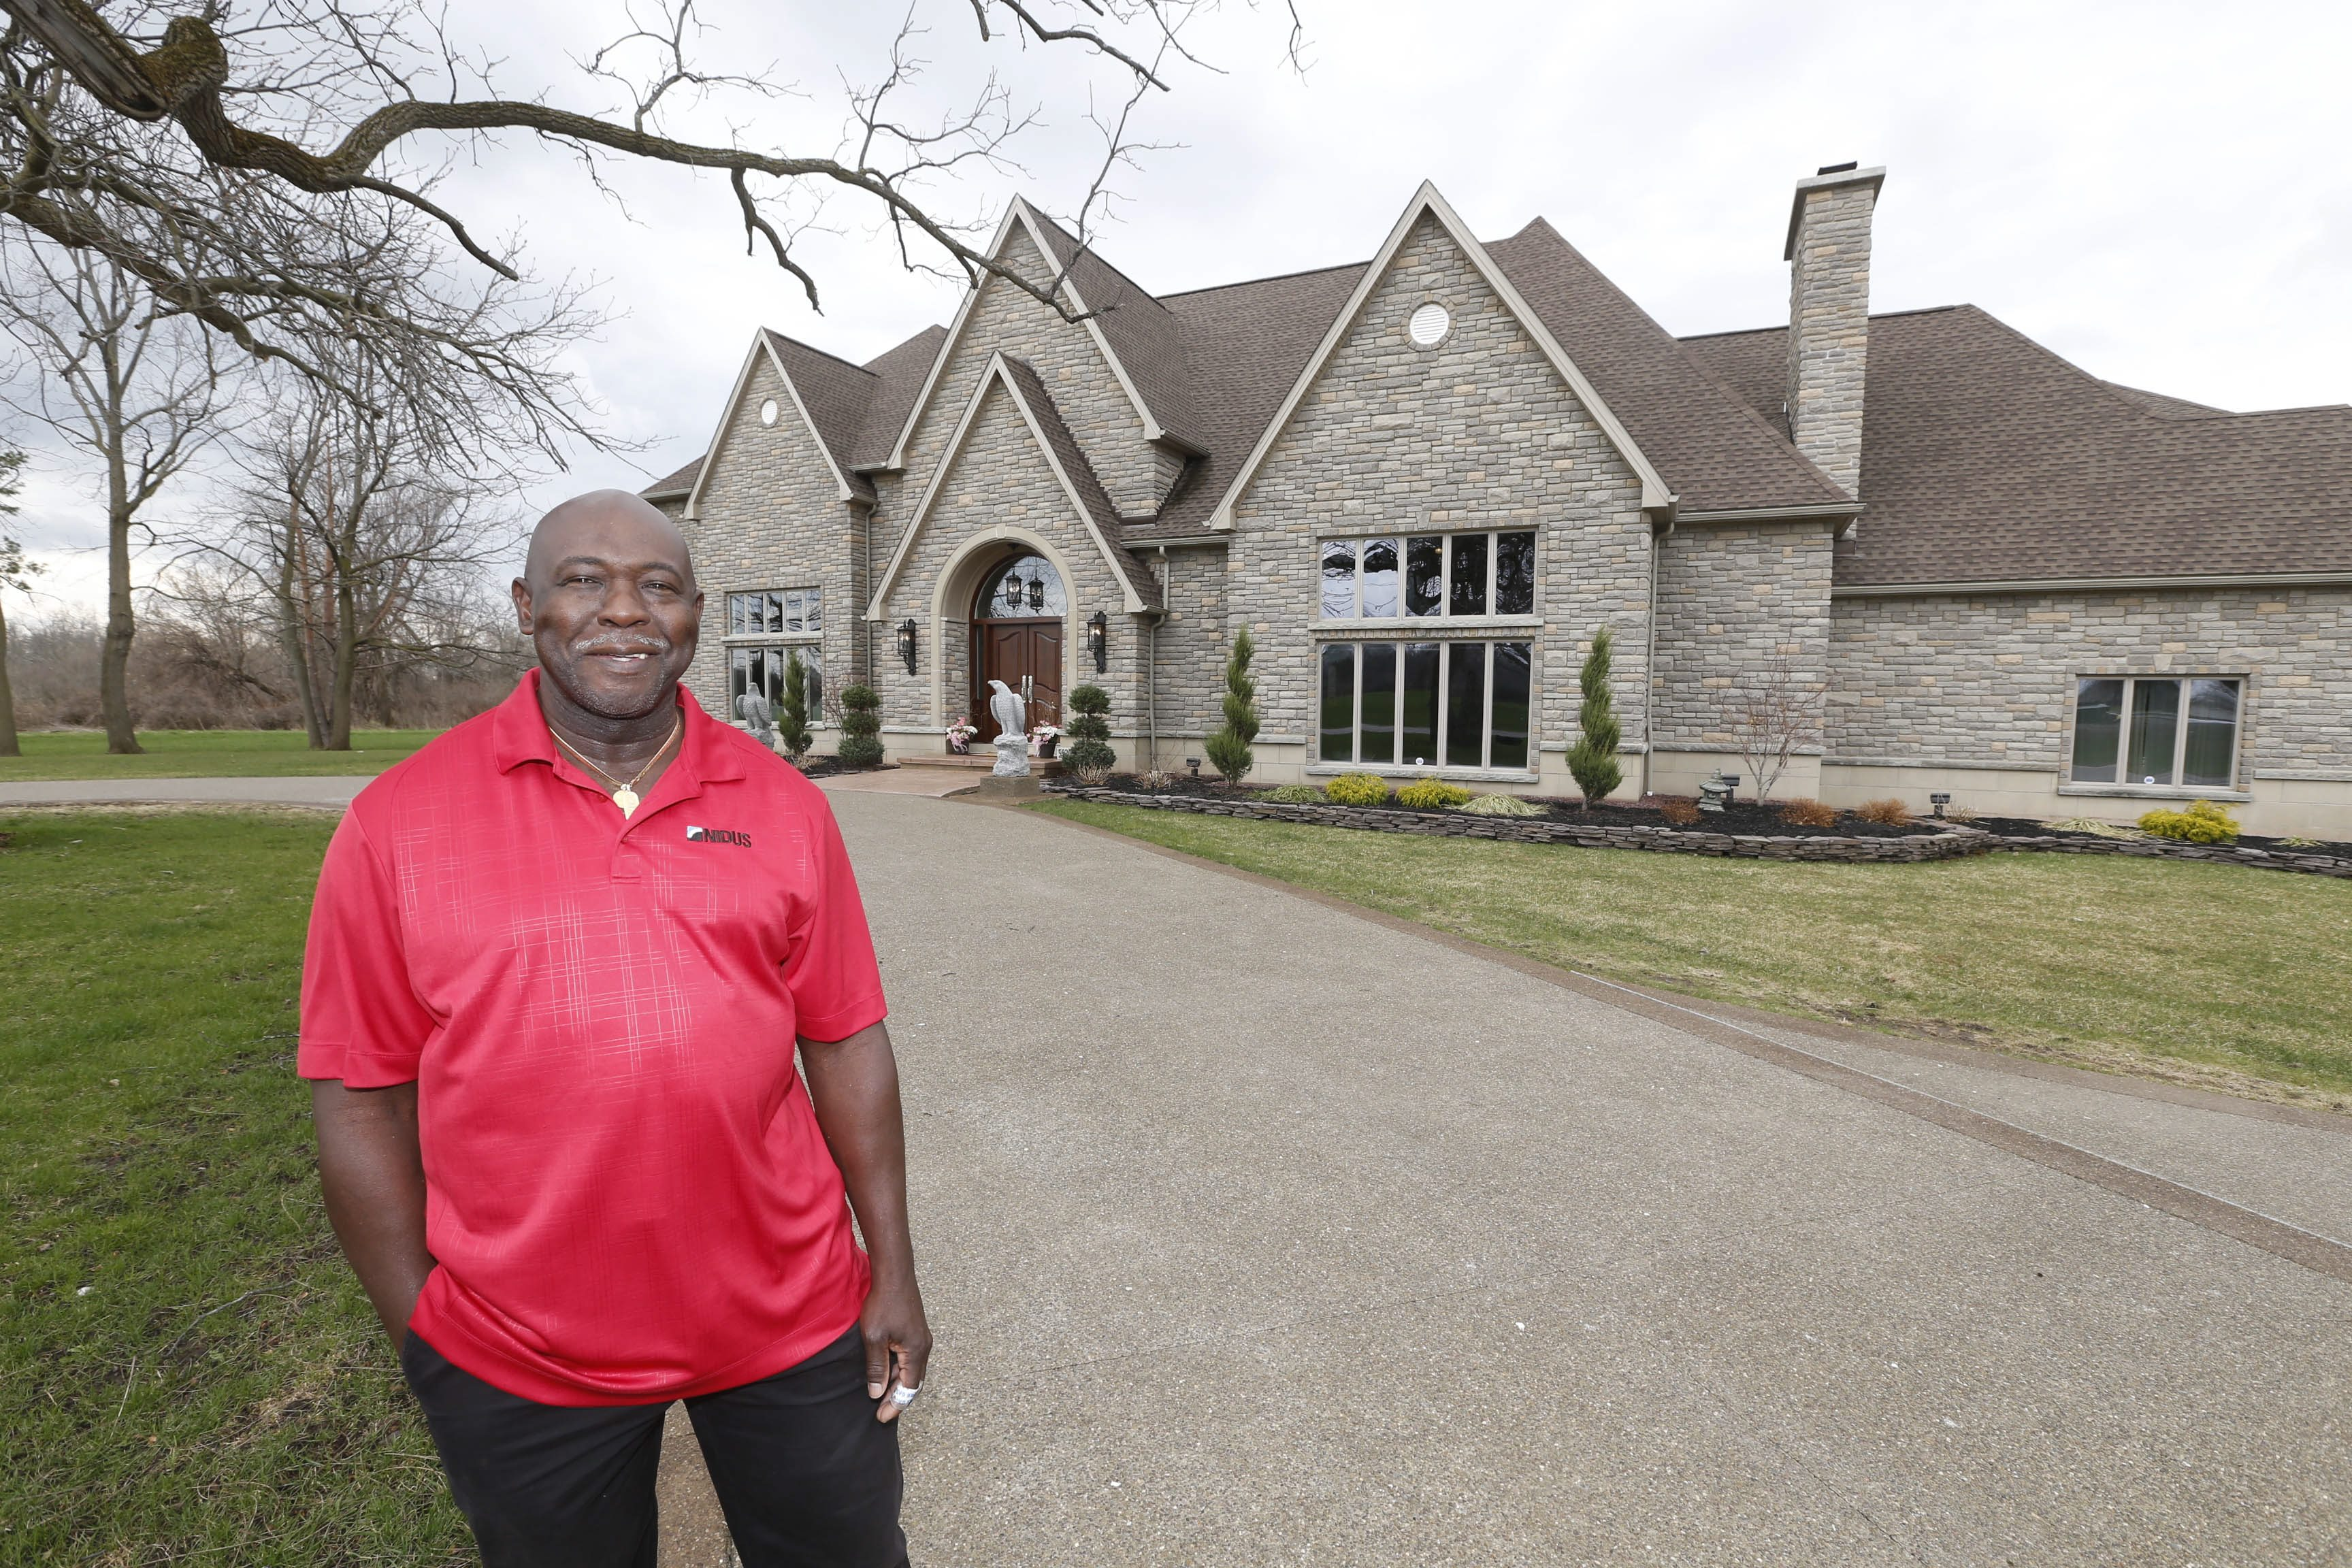 Dr. Greg Daniel with his geothermal mansion in Clarence. He has proposed building a subdivision with 51 upscale homes next to his home and horse farm. (Robert Kirkham/Buffalo News)